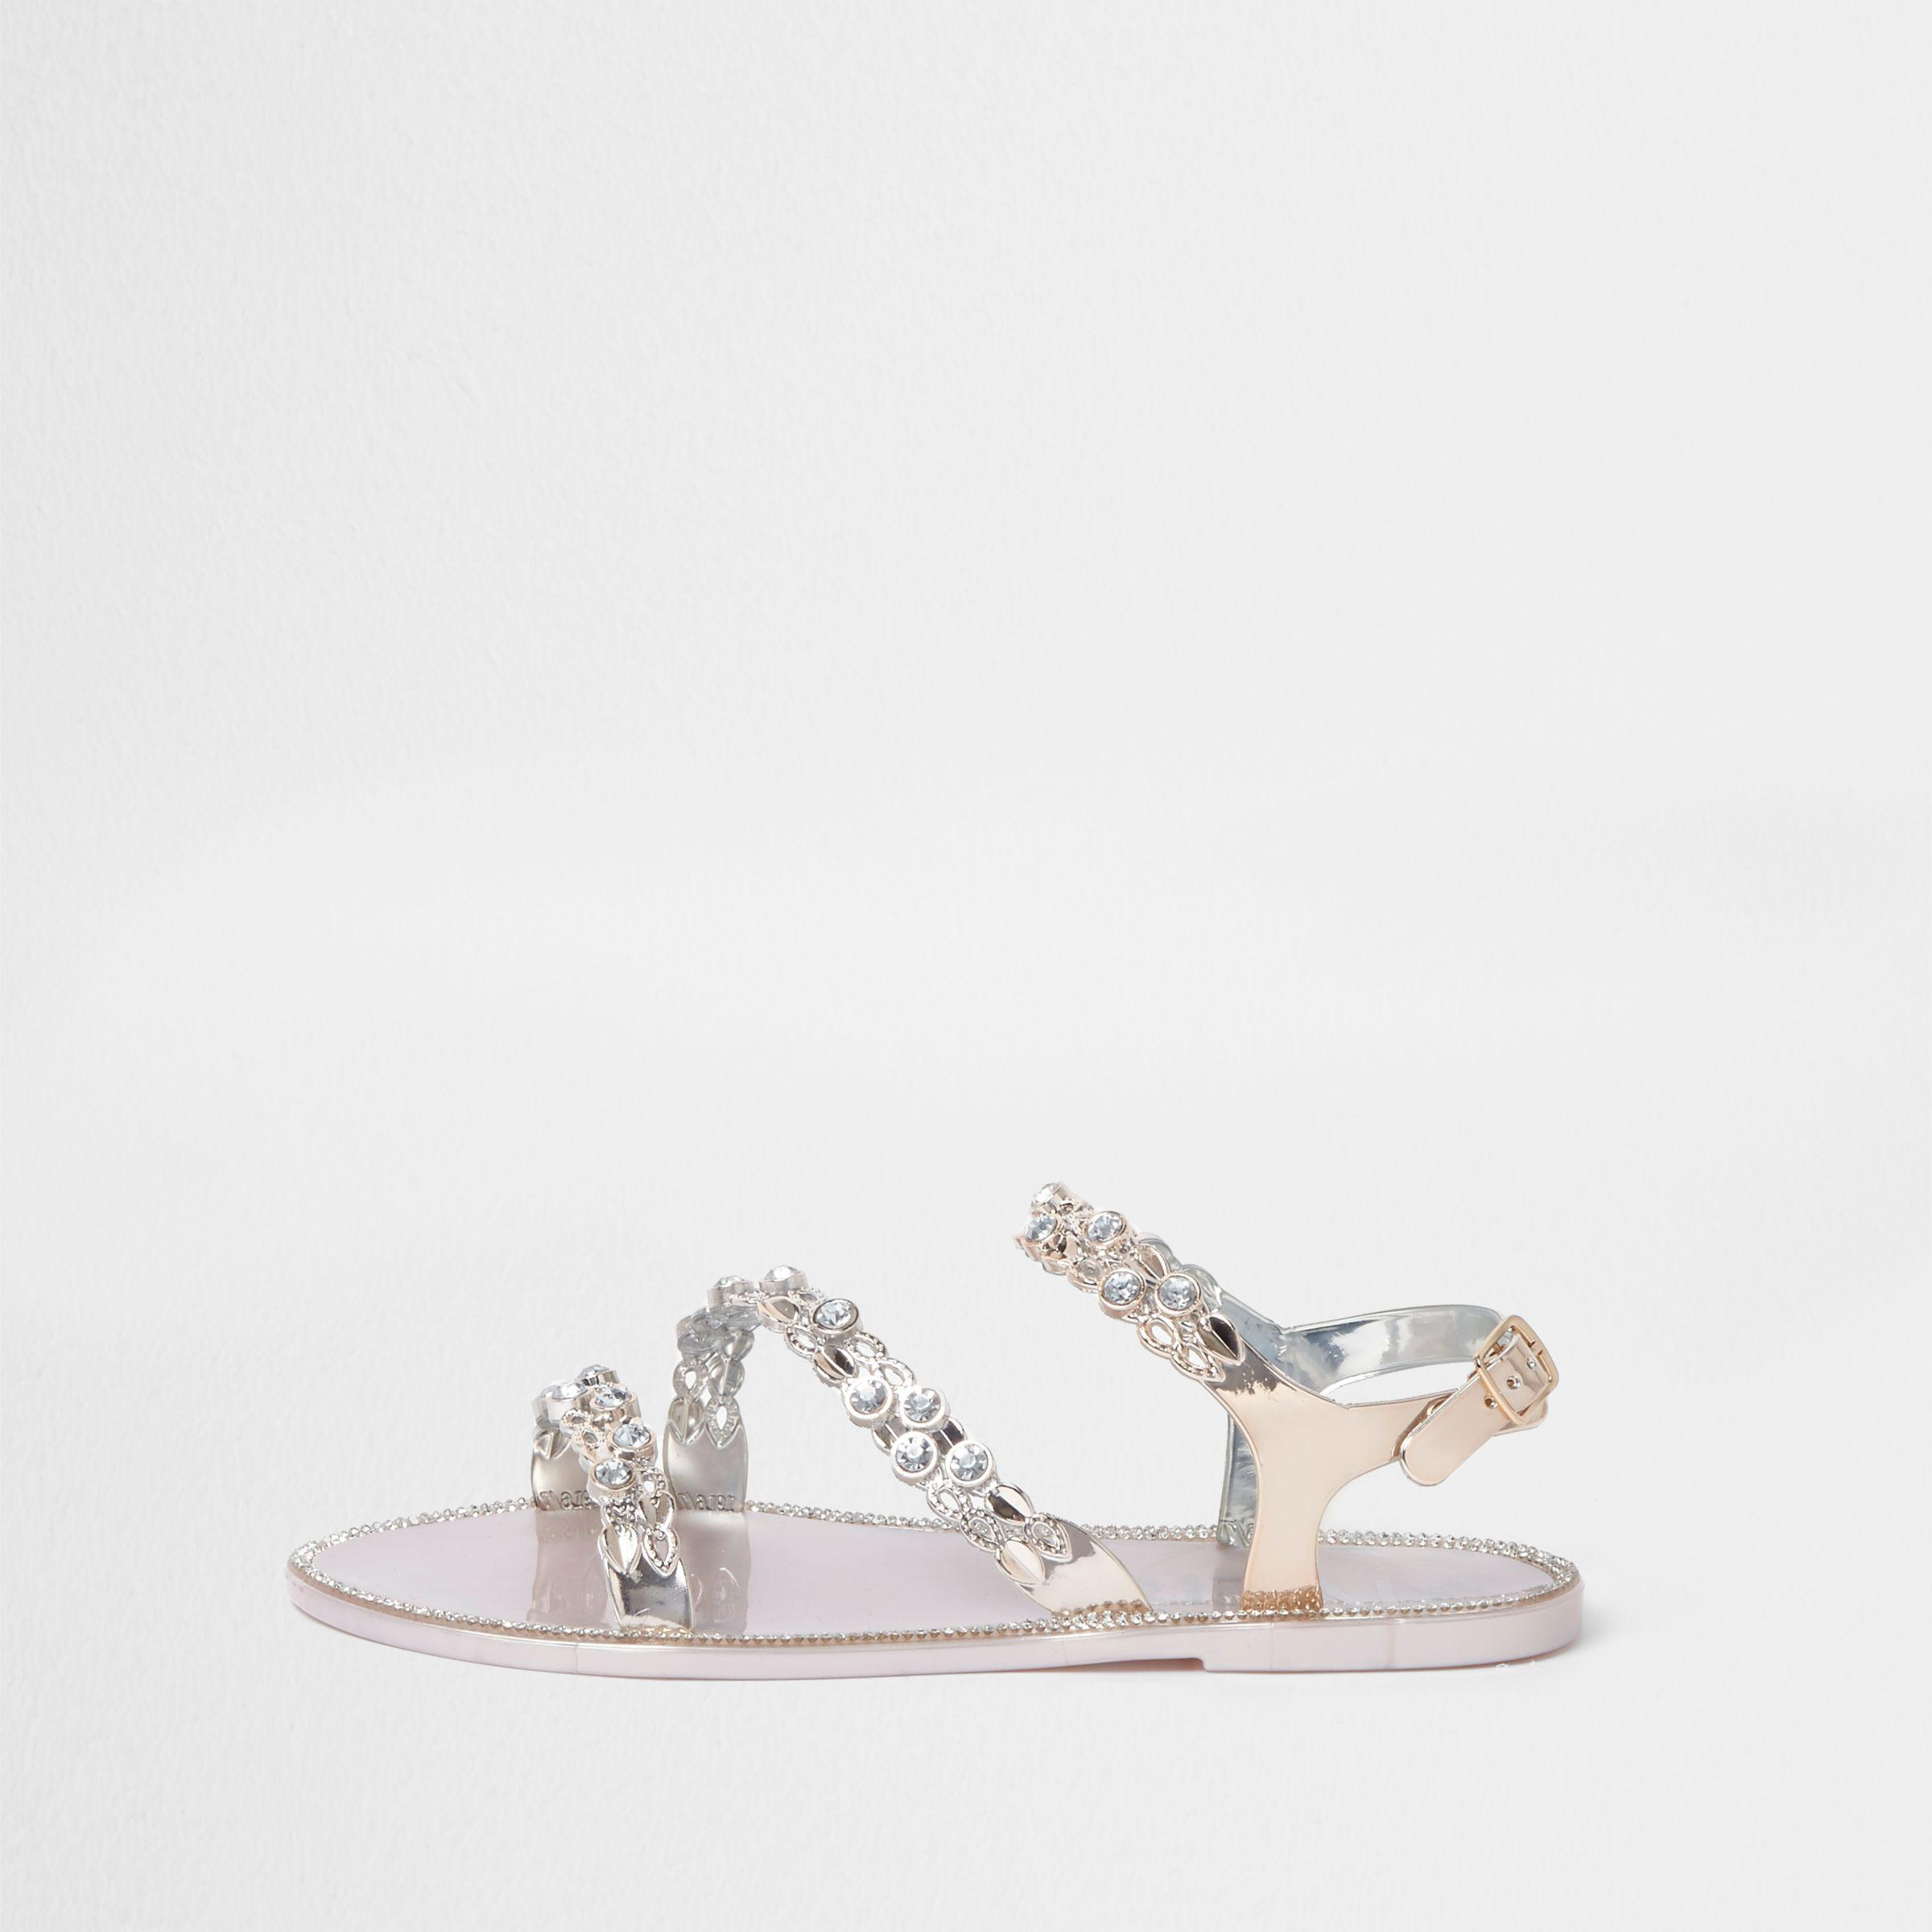 ad9202123 Lyst - River Island Gold Jewel Strap Jelly Sandals in Metallic